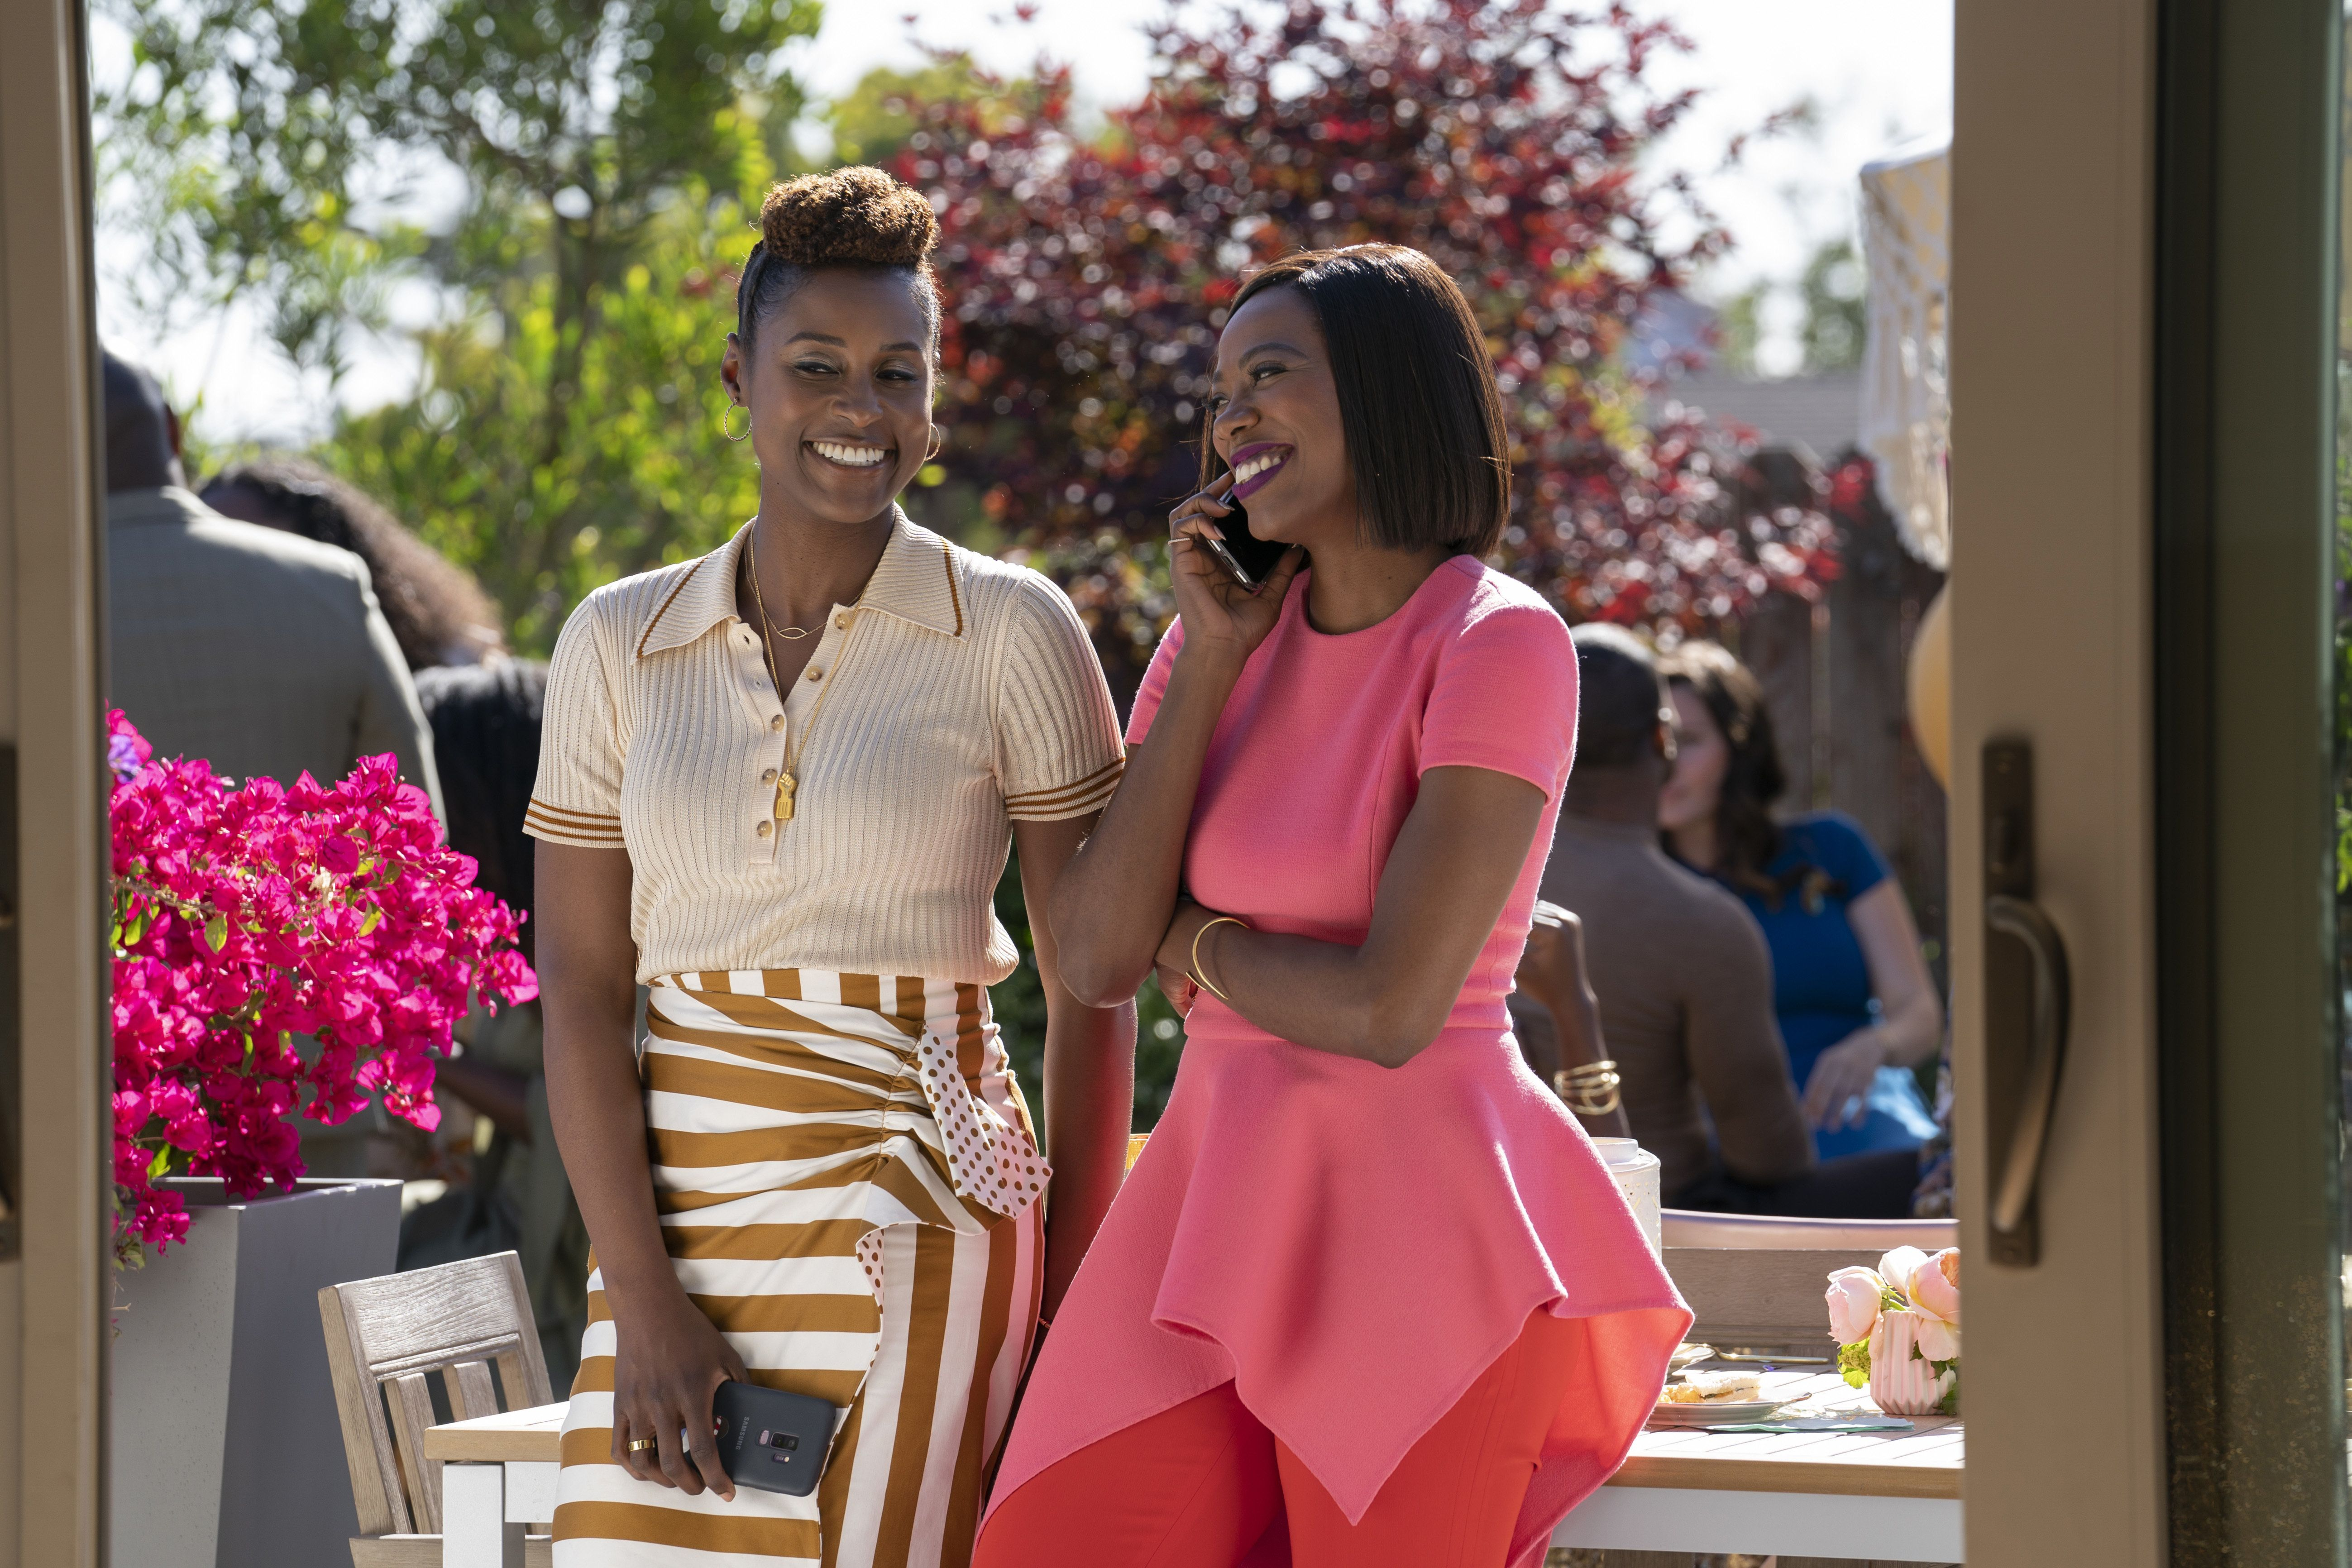 The Latest Episode Of 'Insecure' May Be The Messiest